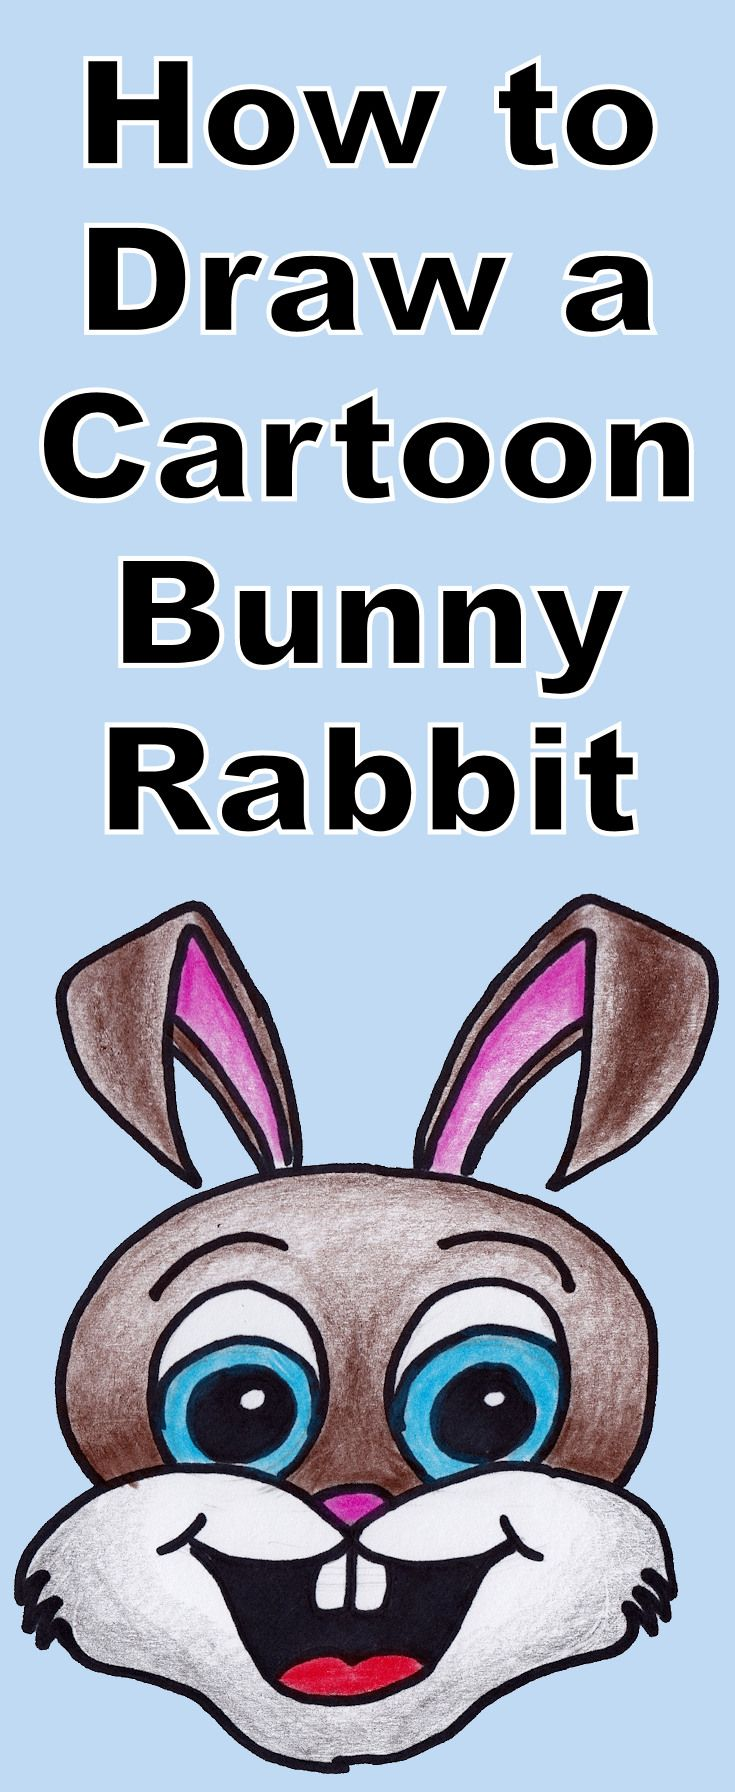 Learn how to draw a cartoon bunny rabbit is this free drawing tutorial for kids. It also includes a coloring page download for the younger ones